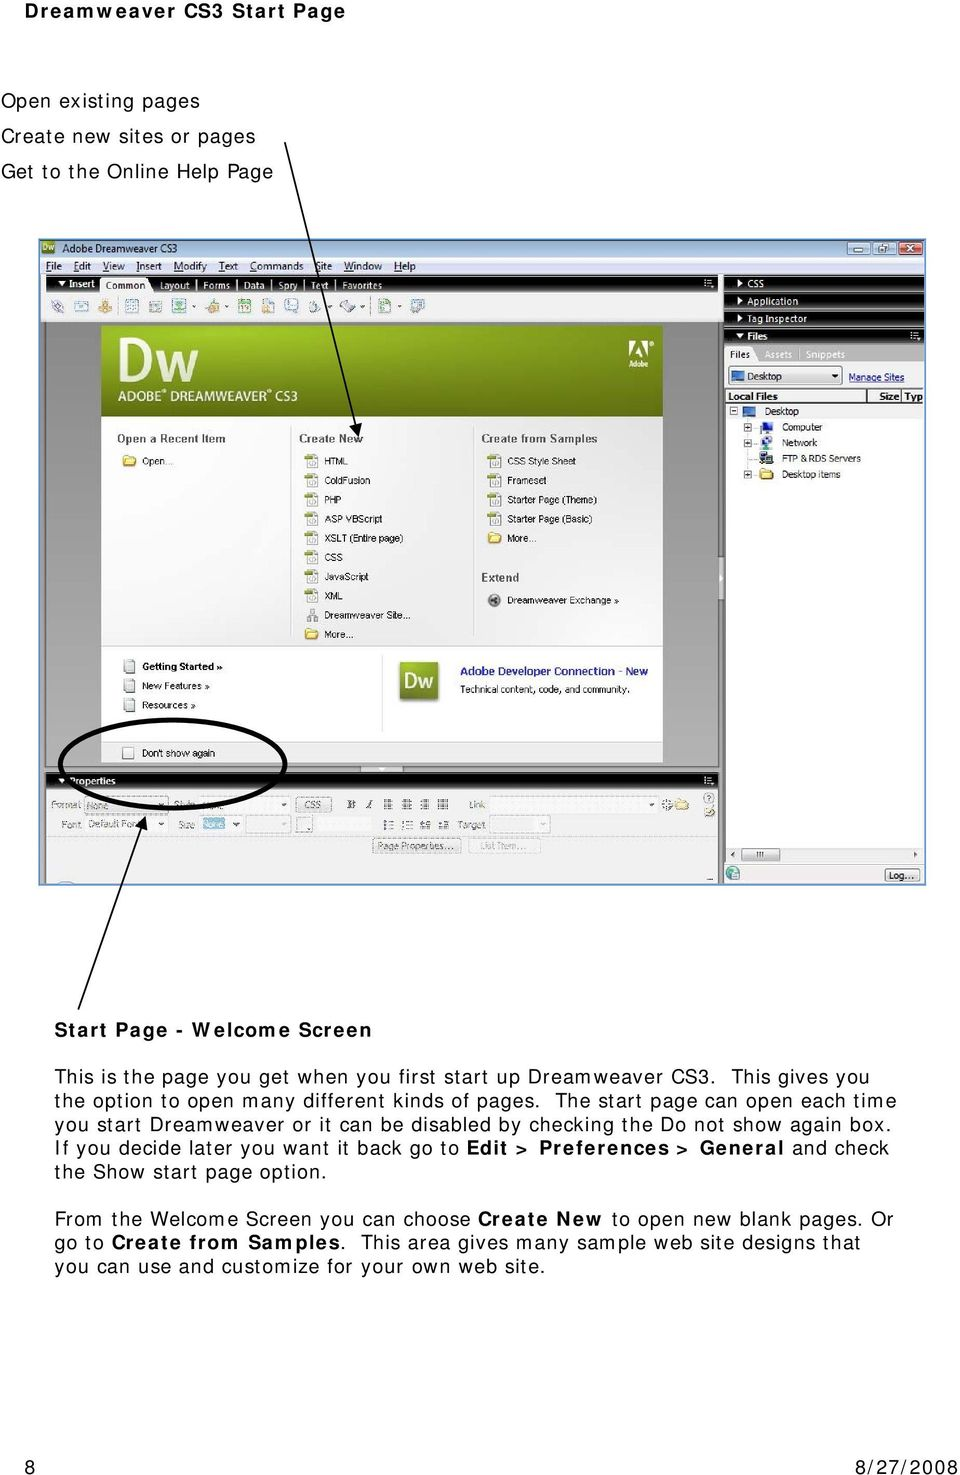 The start page can open each time you start Dreamweaver or it can be disabled by checking the Do not show again box.